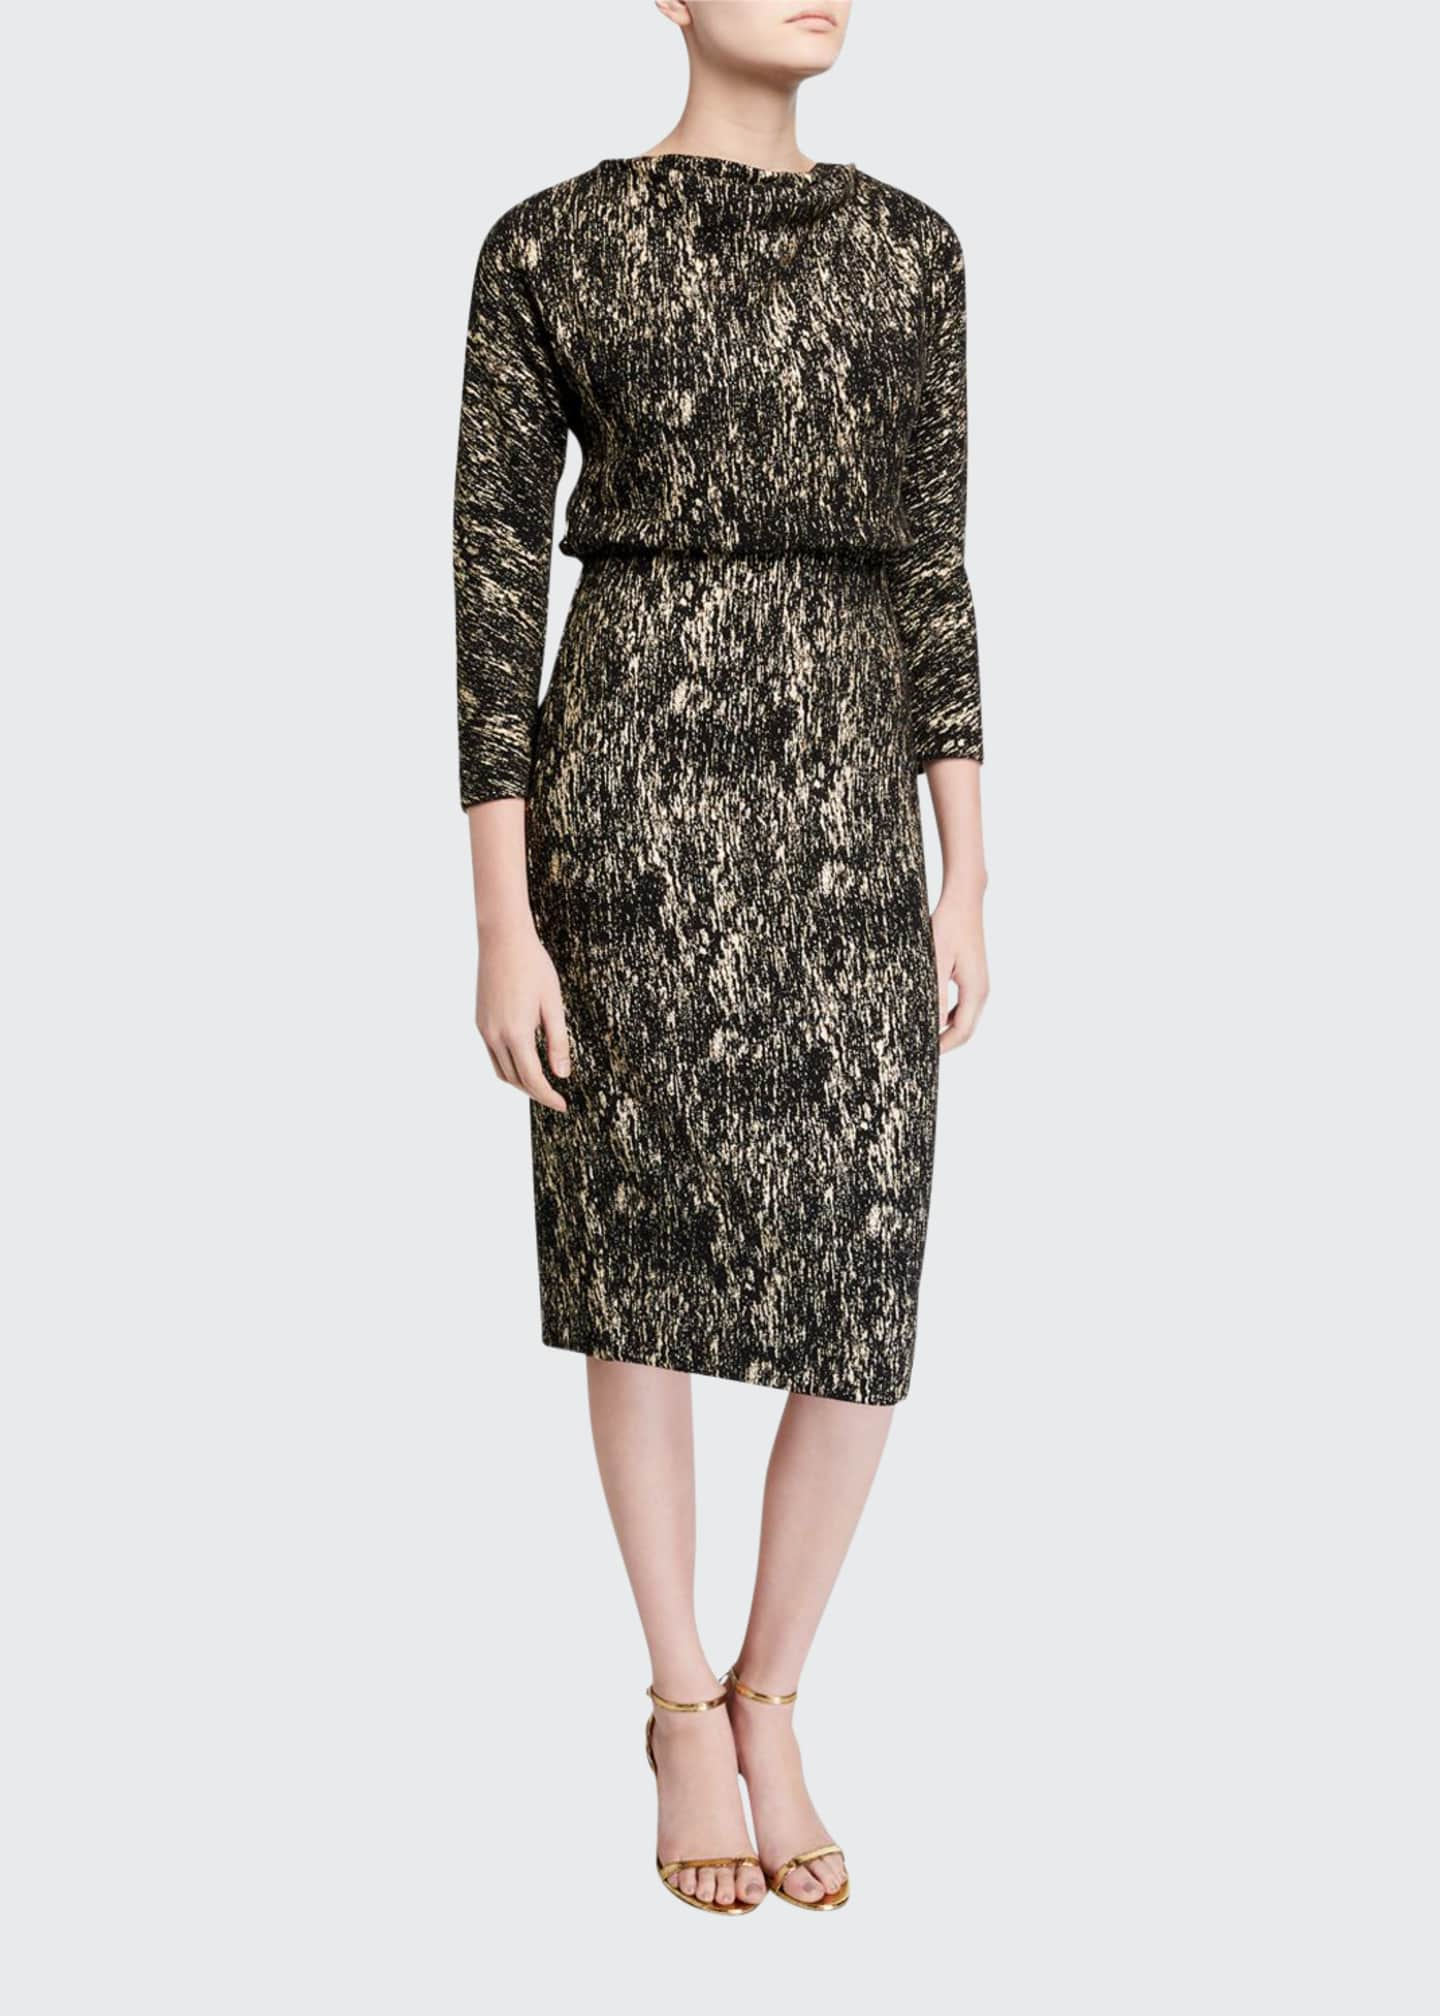 Badgley Mischka Collection Foiled High-Neck 3/4-Sleeve Blouson